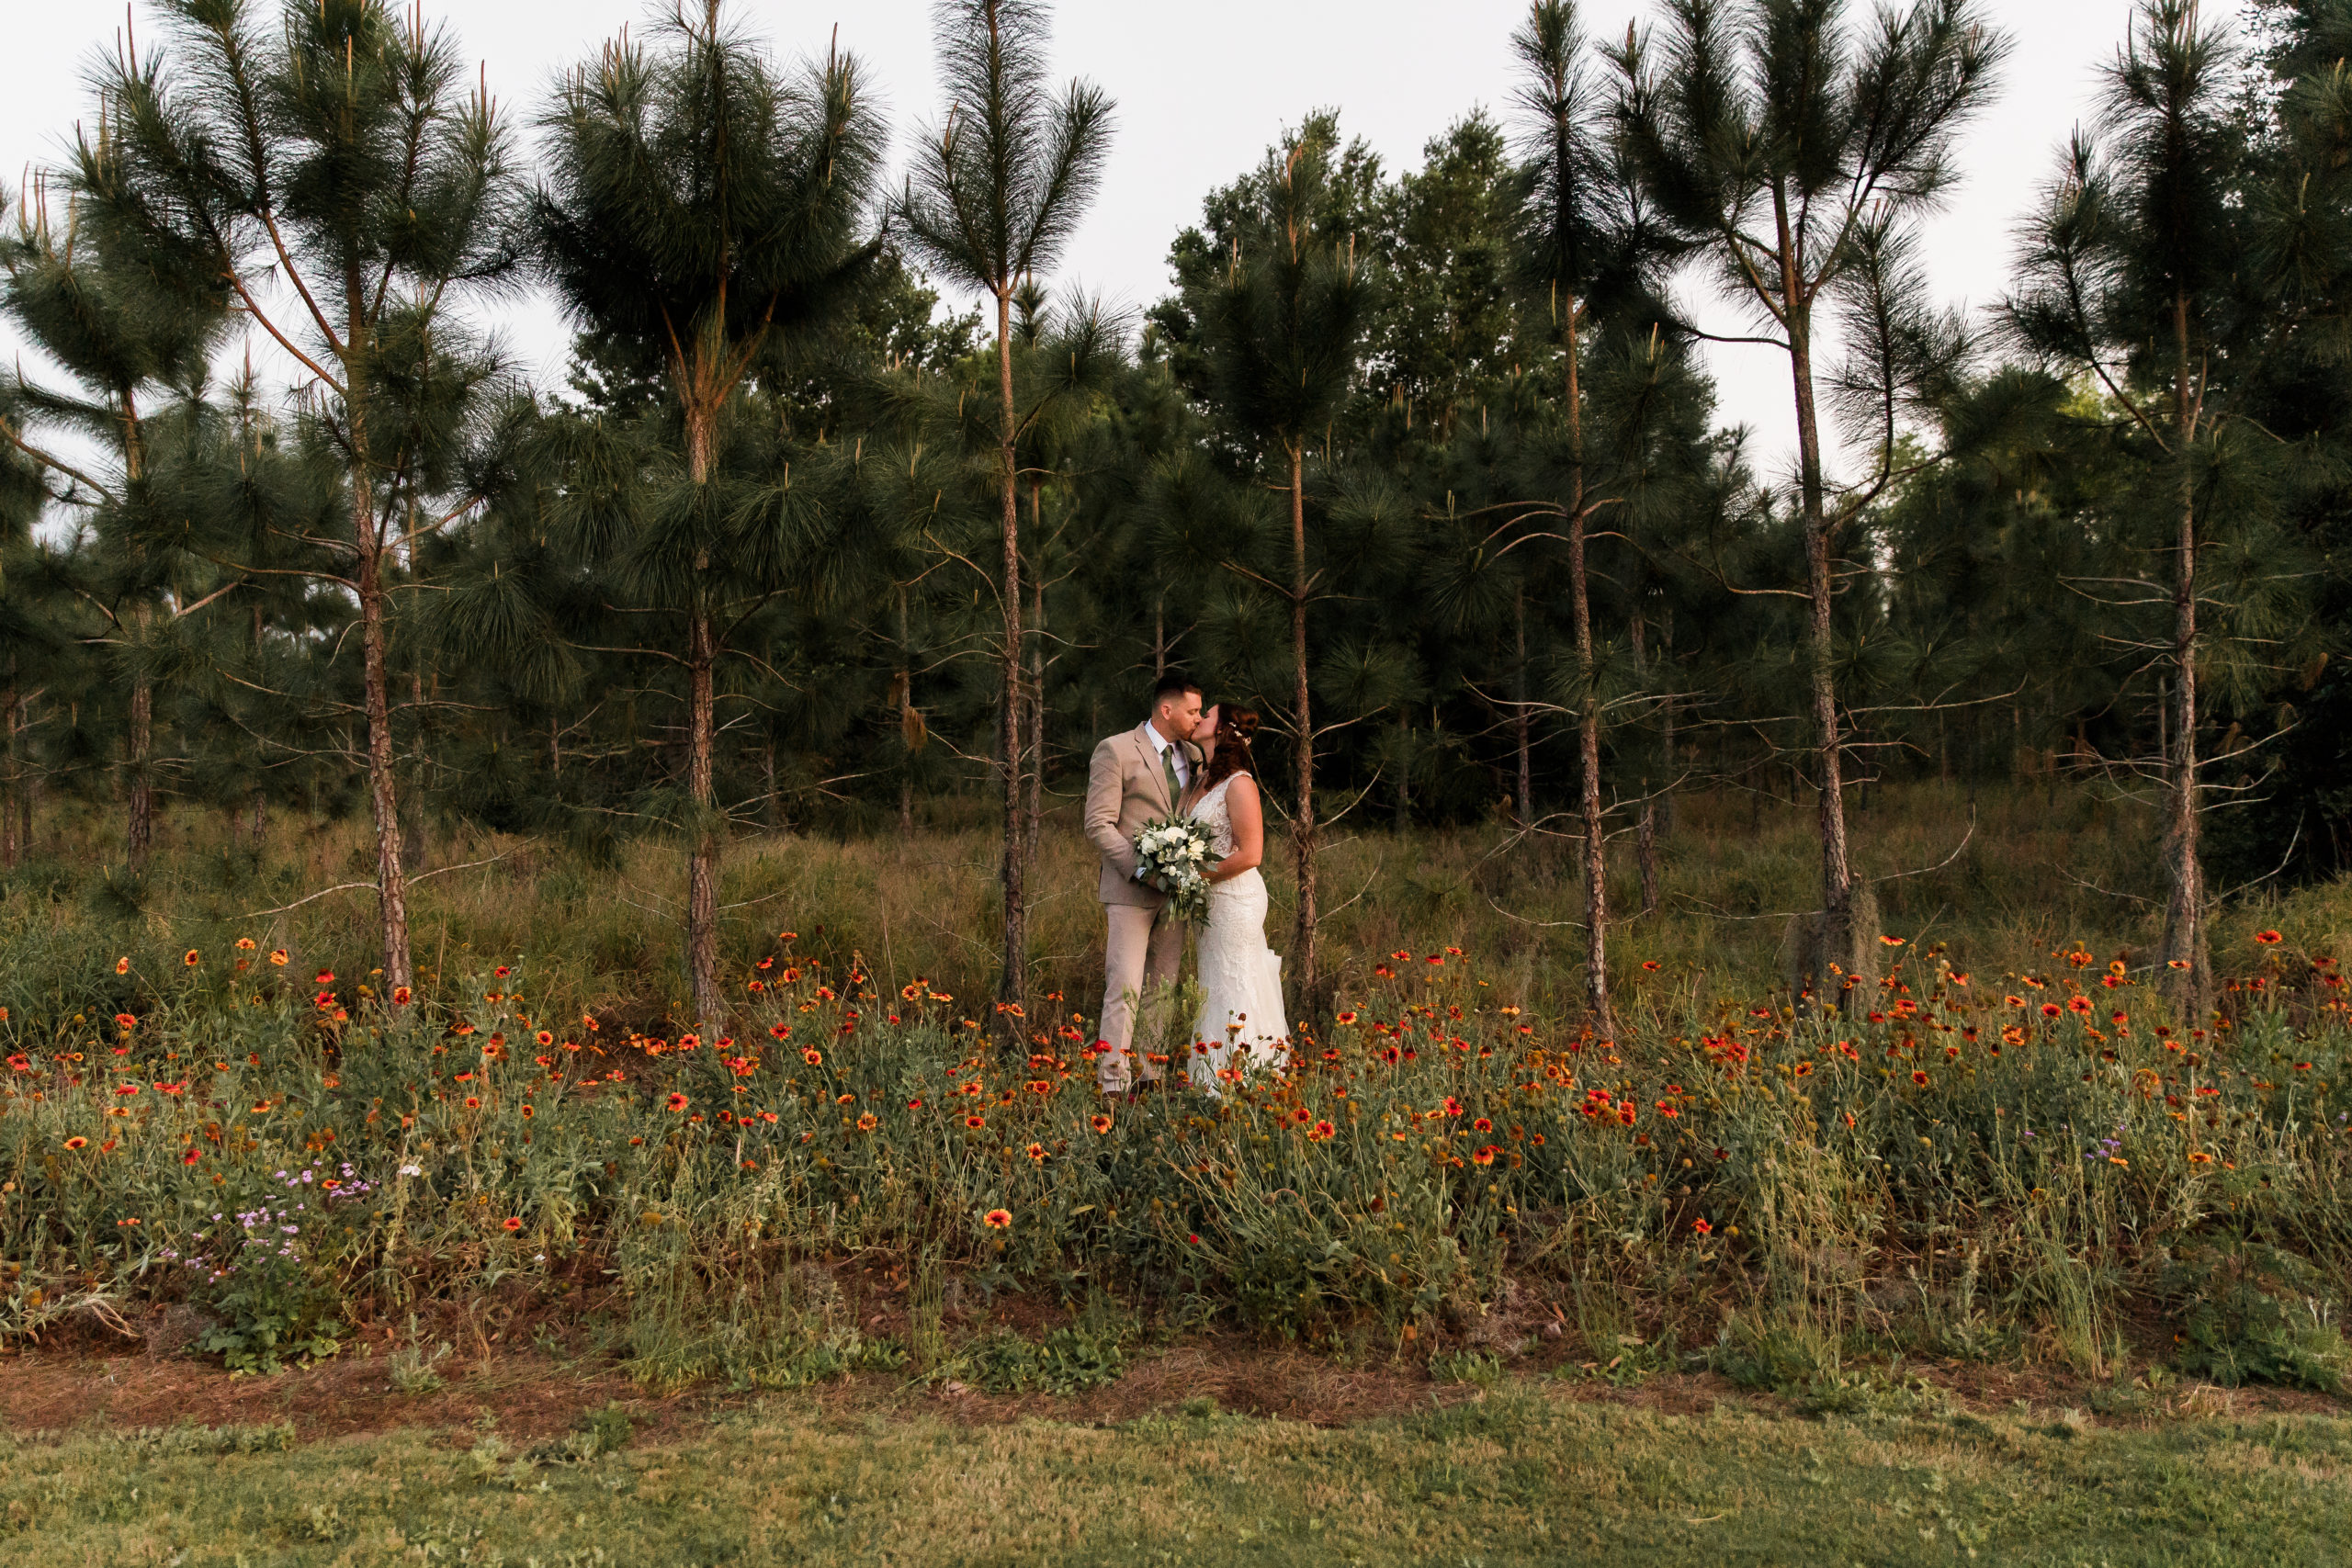 Bride and Groom standing in wildflowers